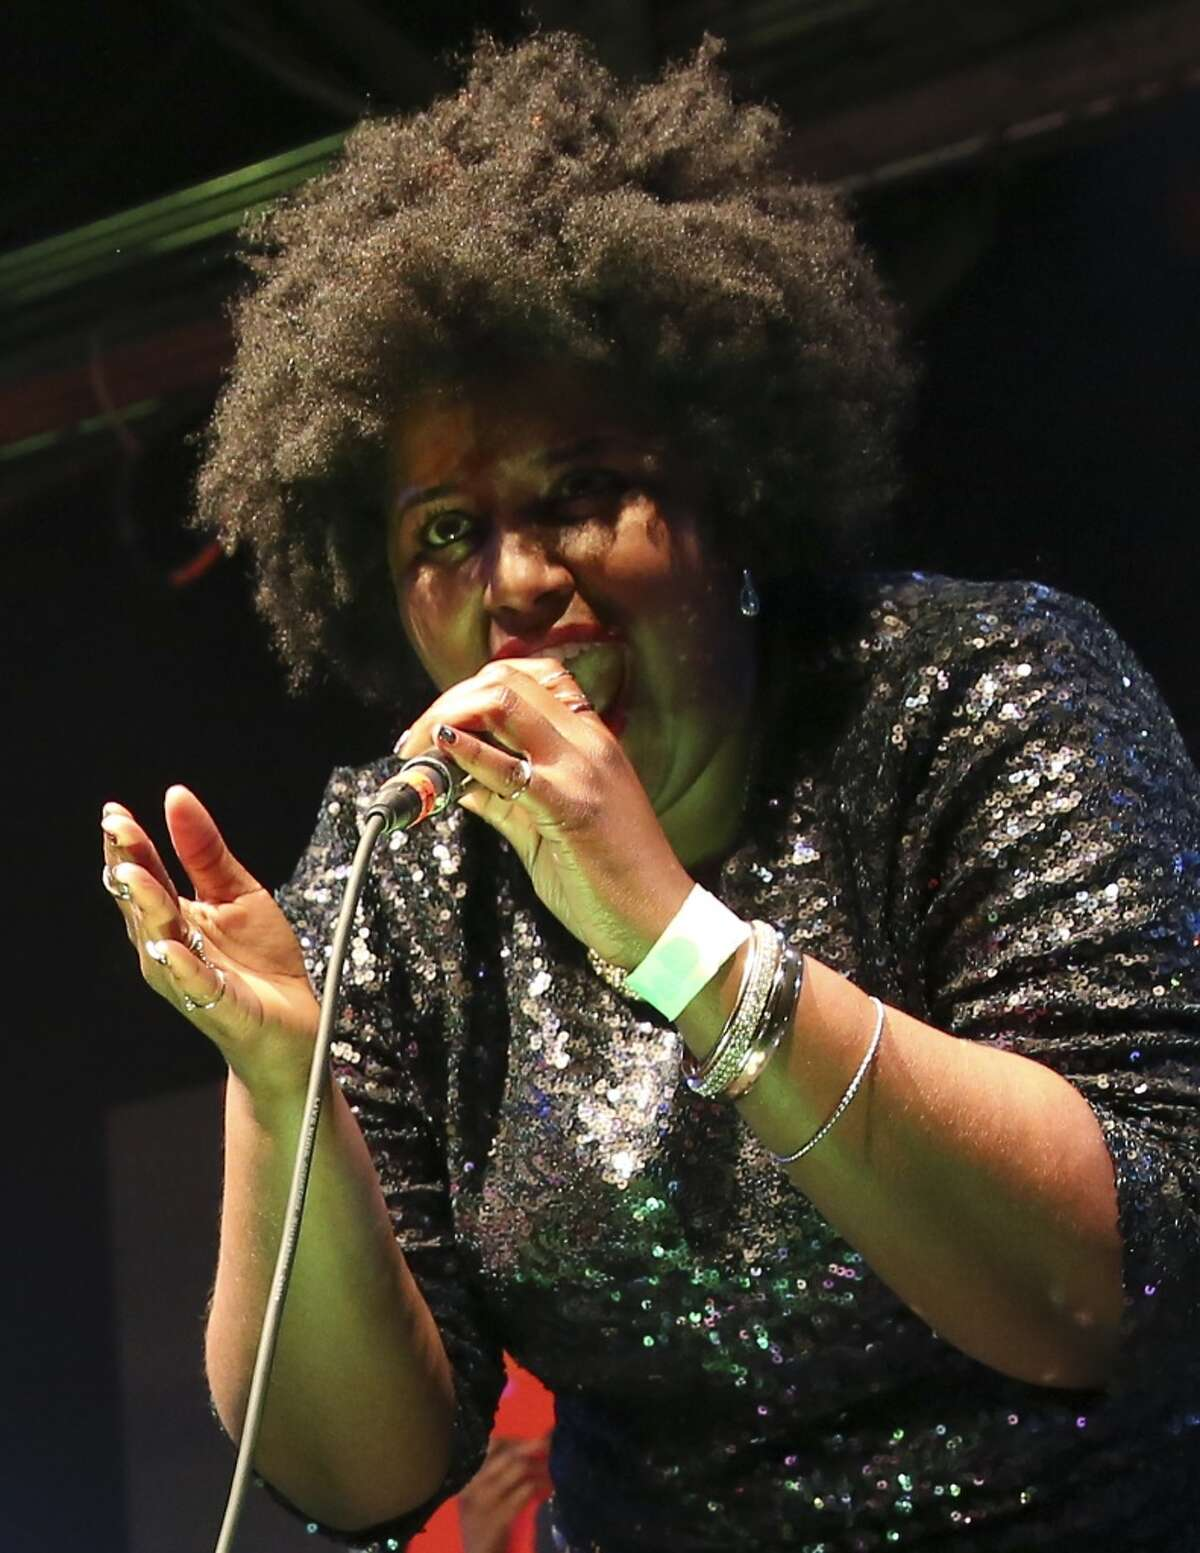 Lead singer, Kam Franklin and the band The Suffers perform on Friday, December 19, 2014 at Warehouse Live in In Houston, TX. (For the Chronicle by Thomas B. Shea)